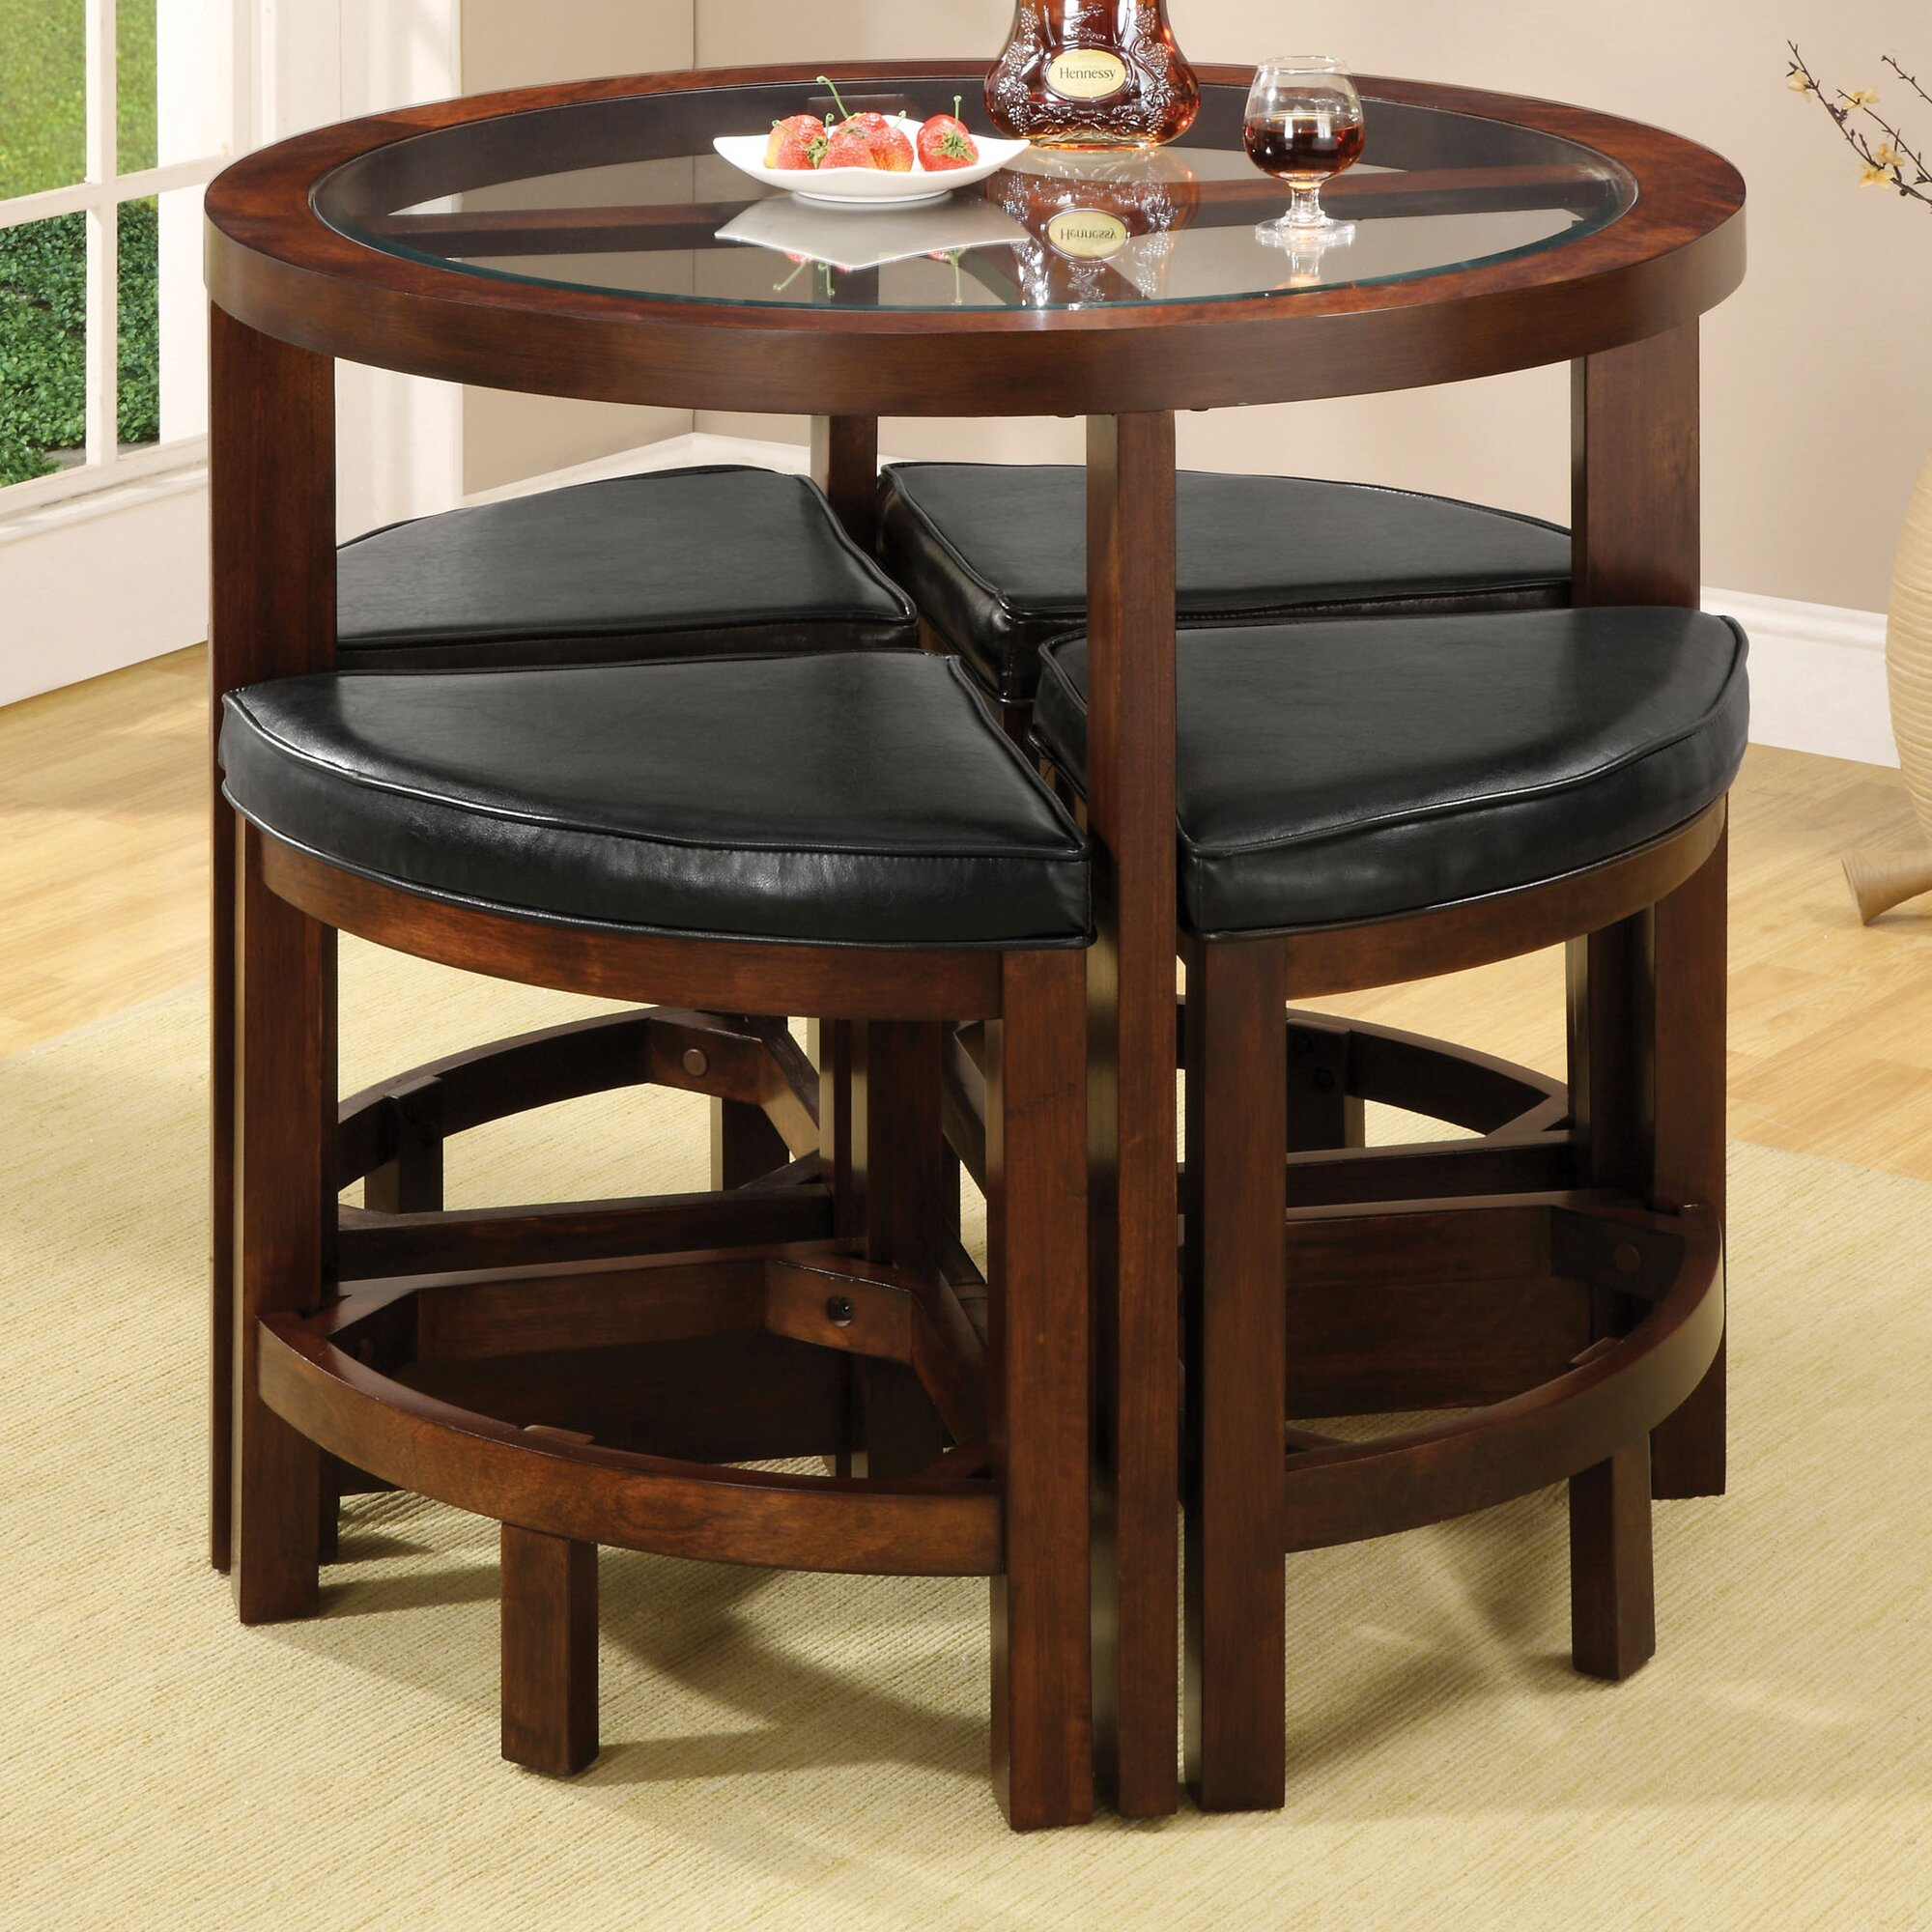 Kitchen pub table and chairs - Alchemist 5 Piece Counter Height Pub Table Set